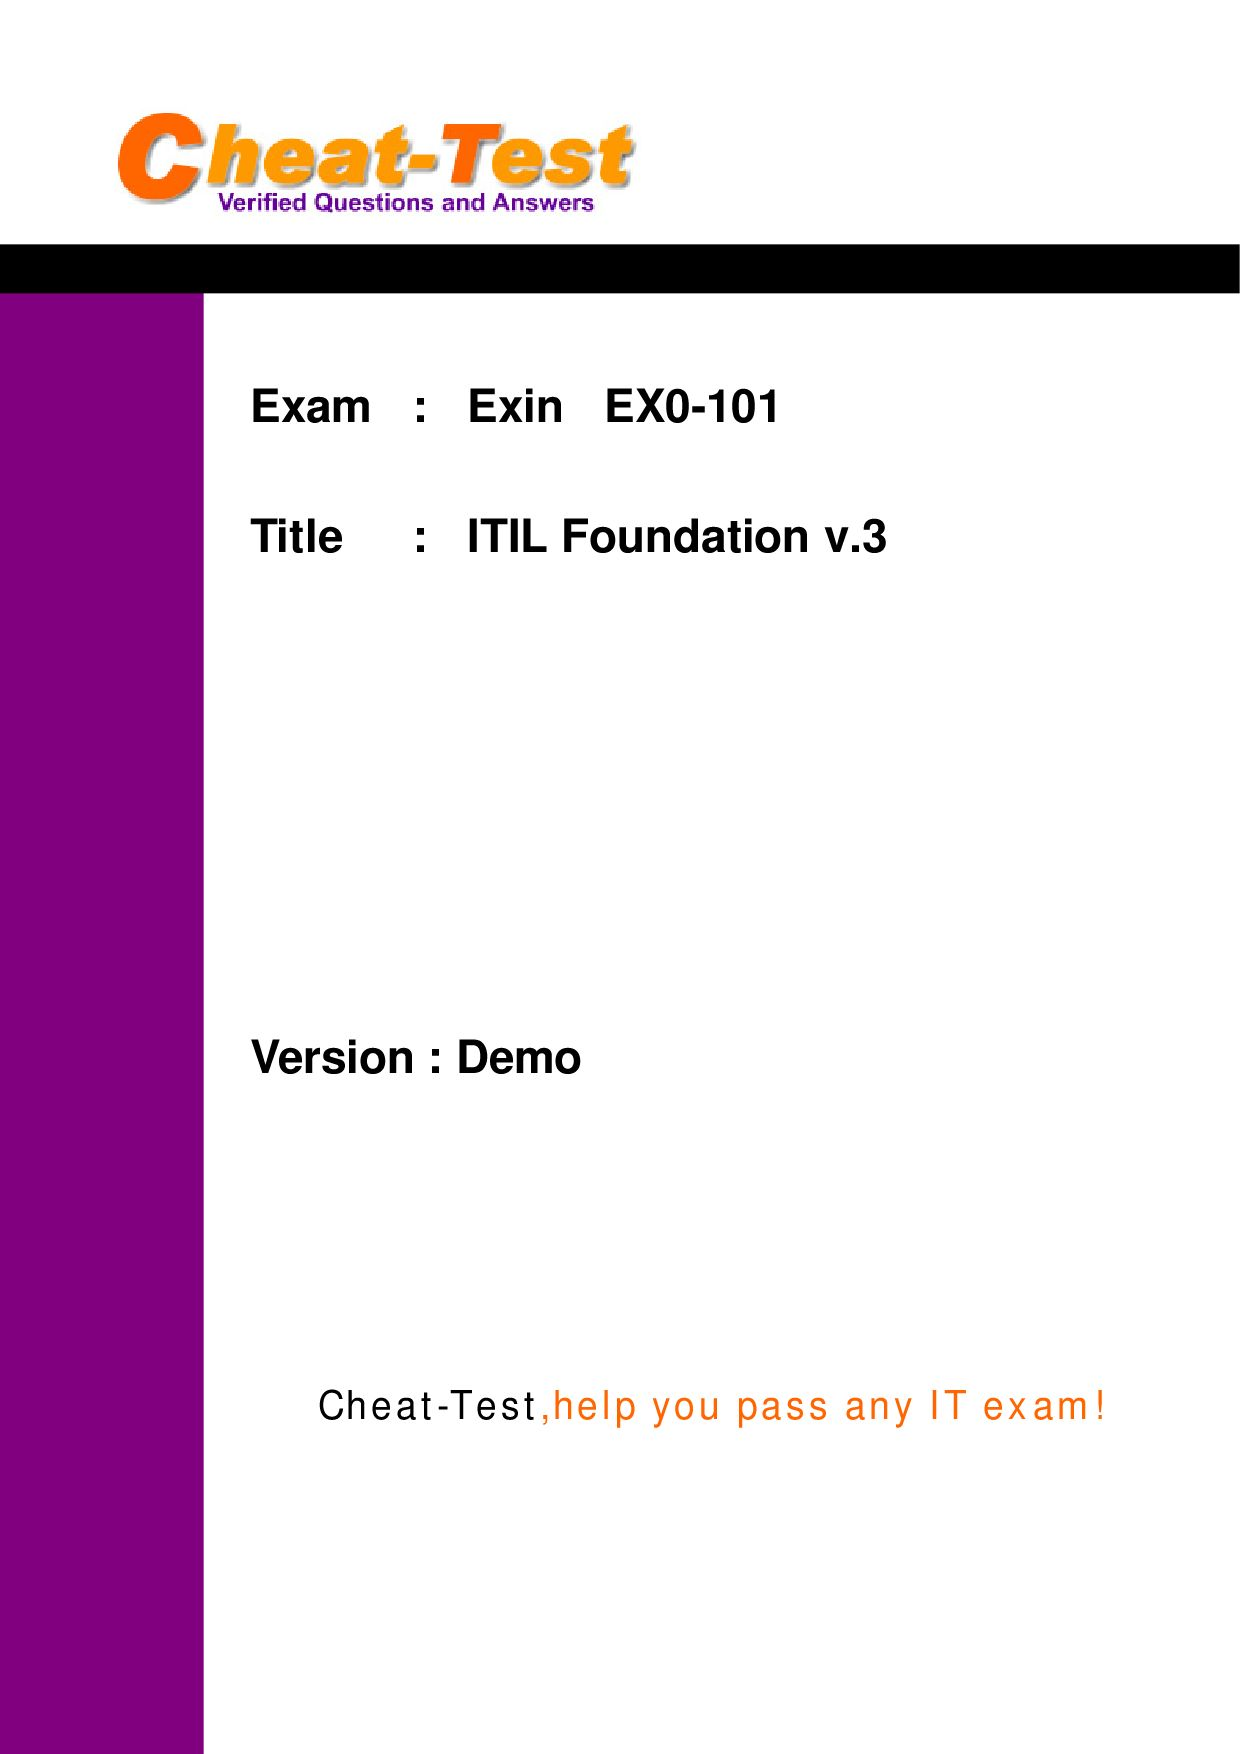 Latest cheat test ex0 101 free questions and answers by ethan latest cheat test ex0 101 free questions and answers by ethan taylor issuu xflitez Image collections